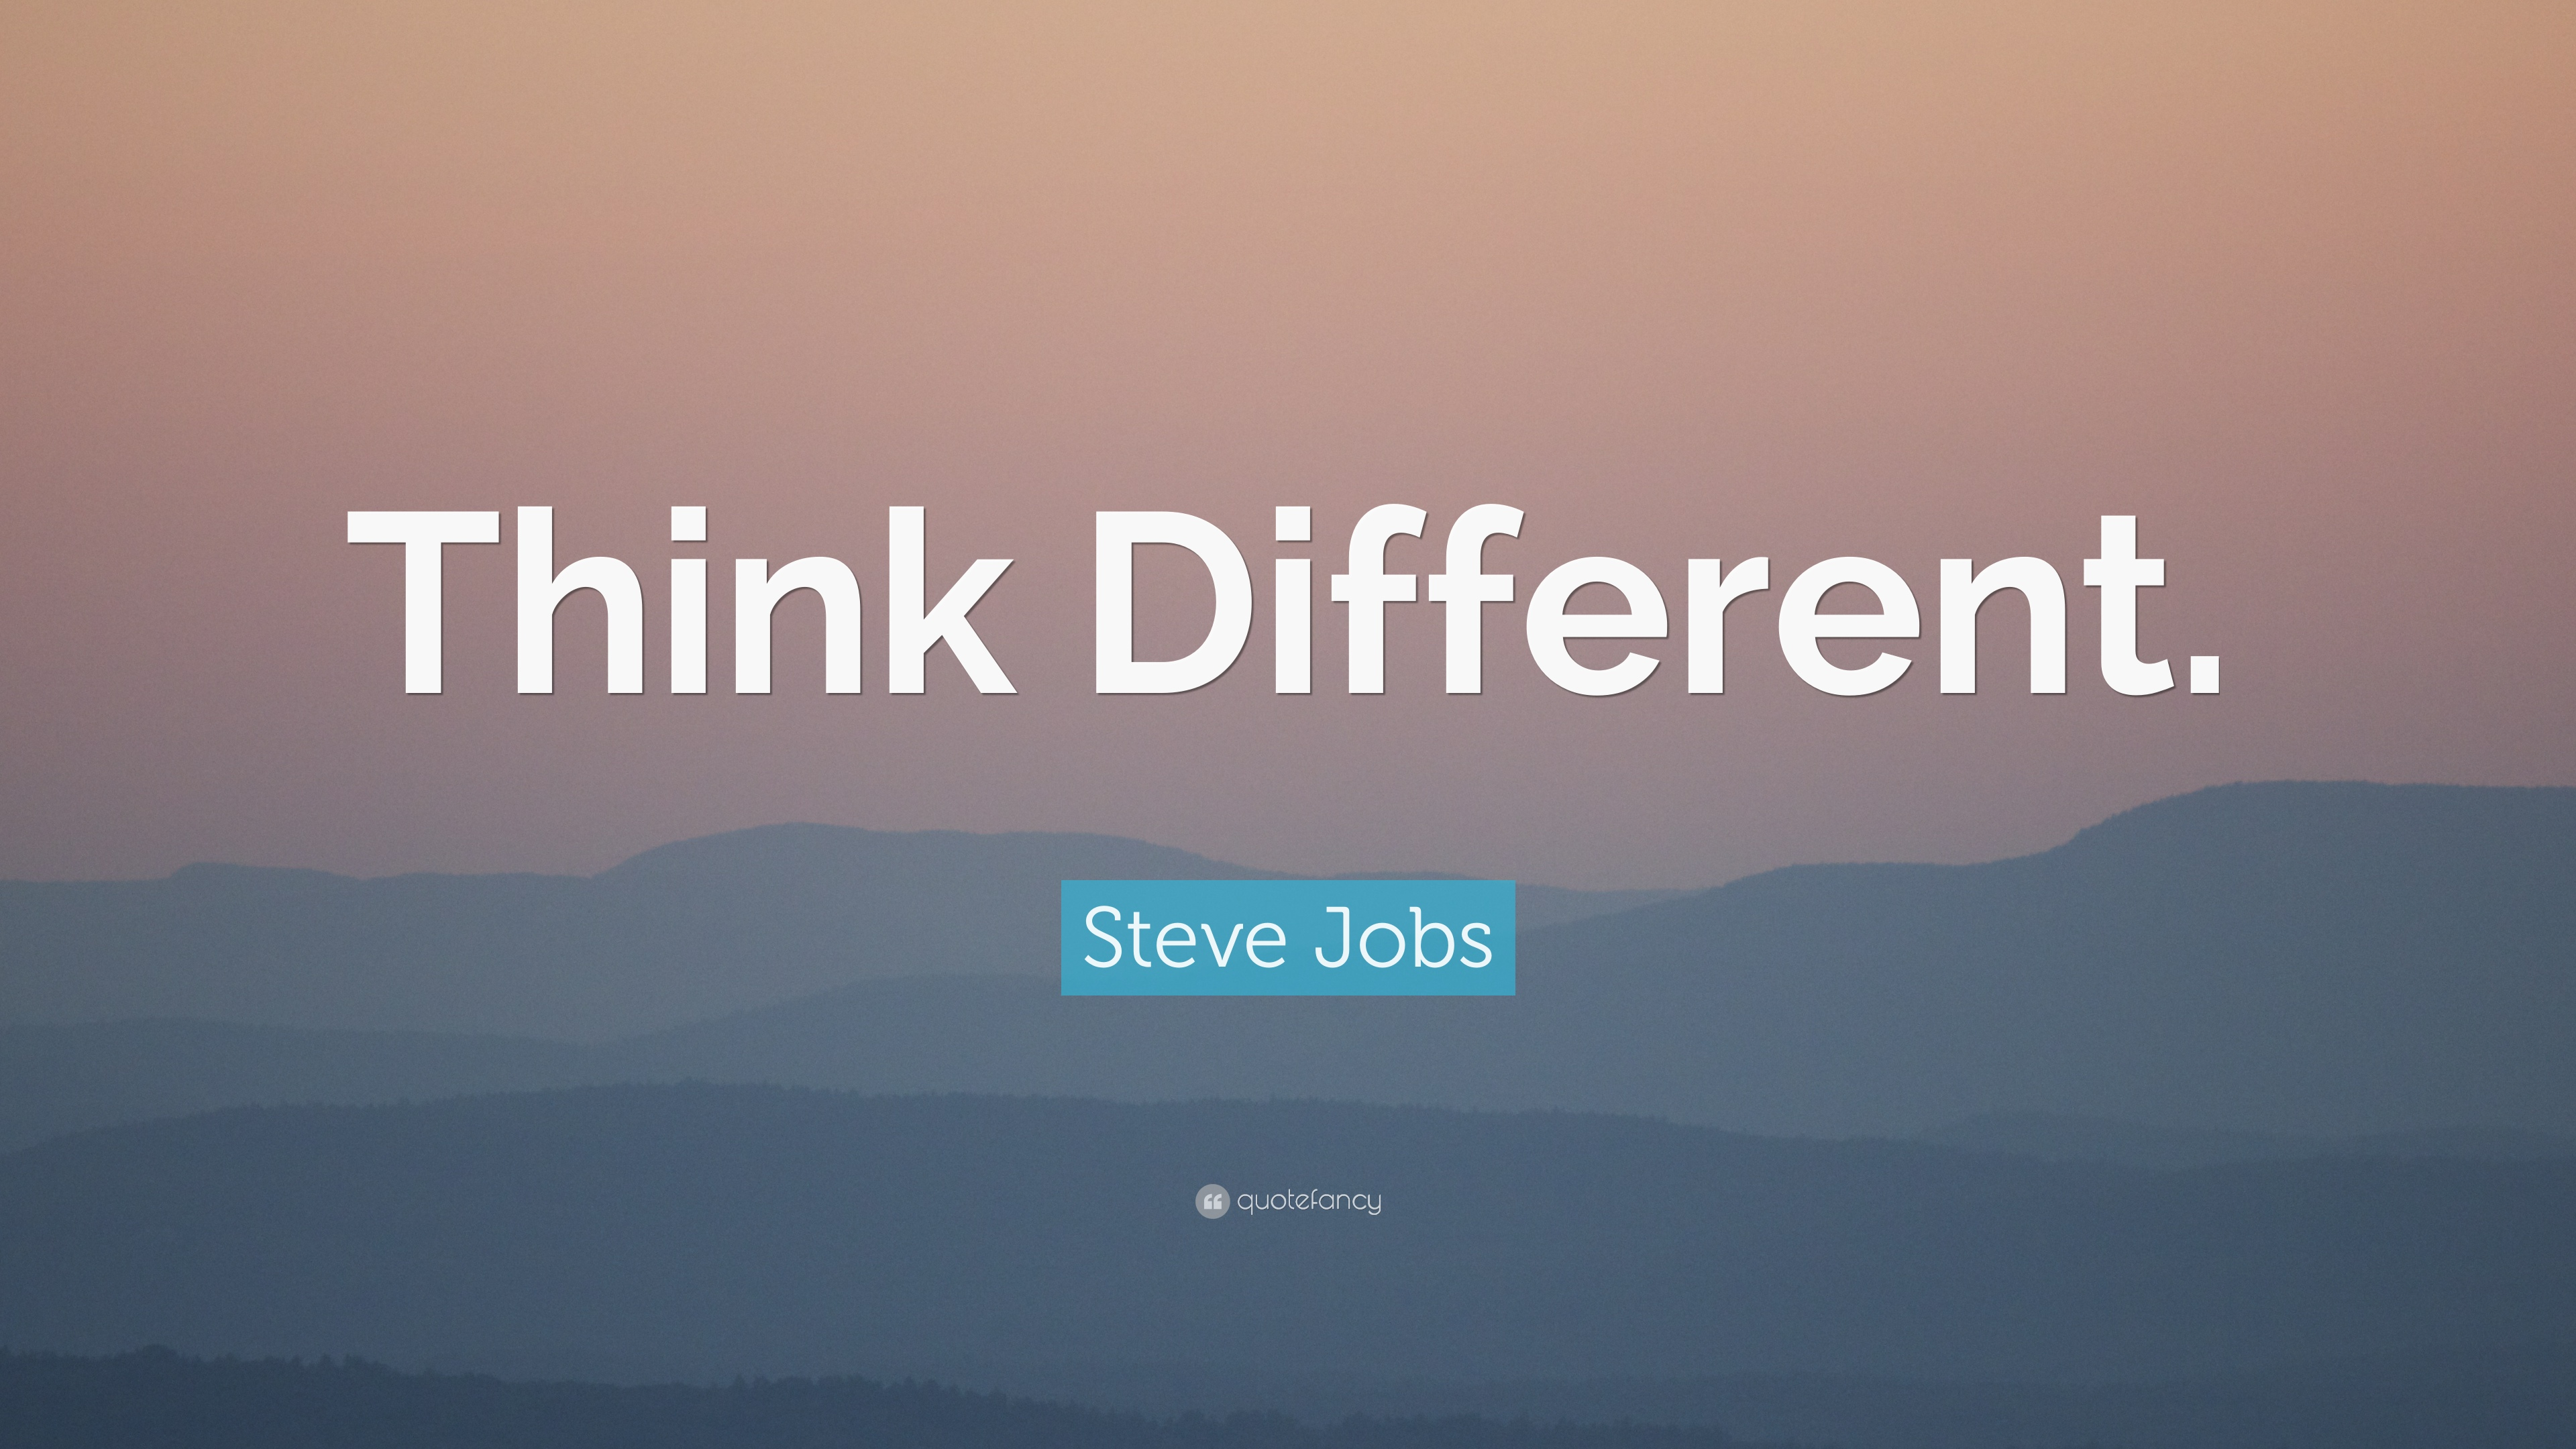 """steve jobs independent thinker and influence Facione, pa, """"critical thinking: what it is and why it counts"""" 2015 update page 3 define """"offensive violence"""" and see if we can learn from you did you think of some."""